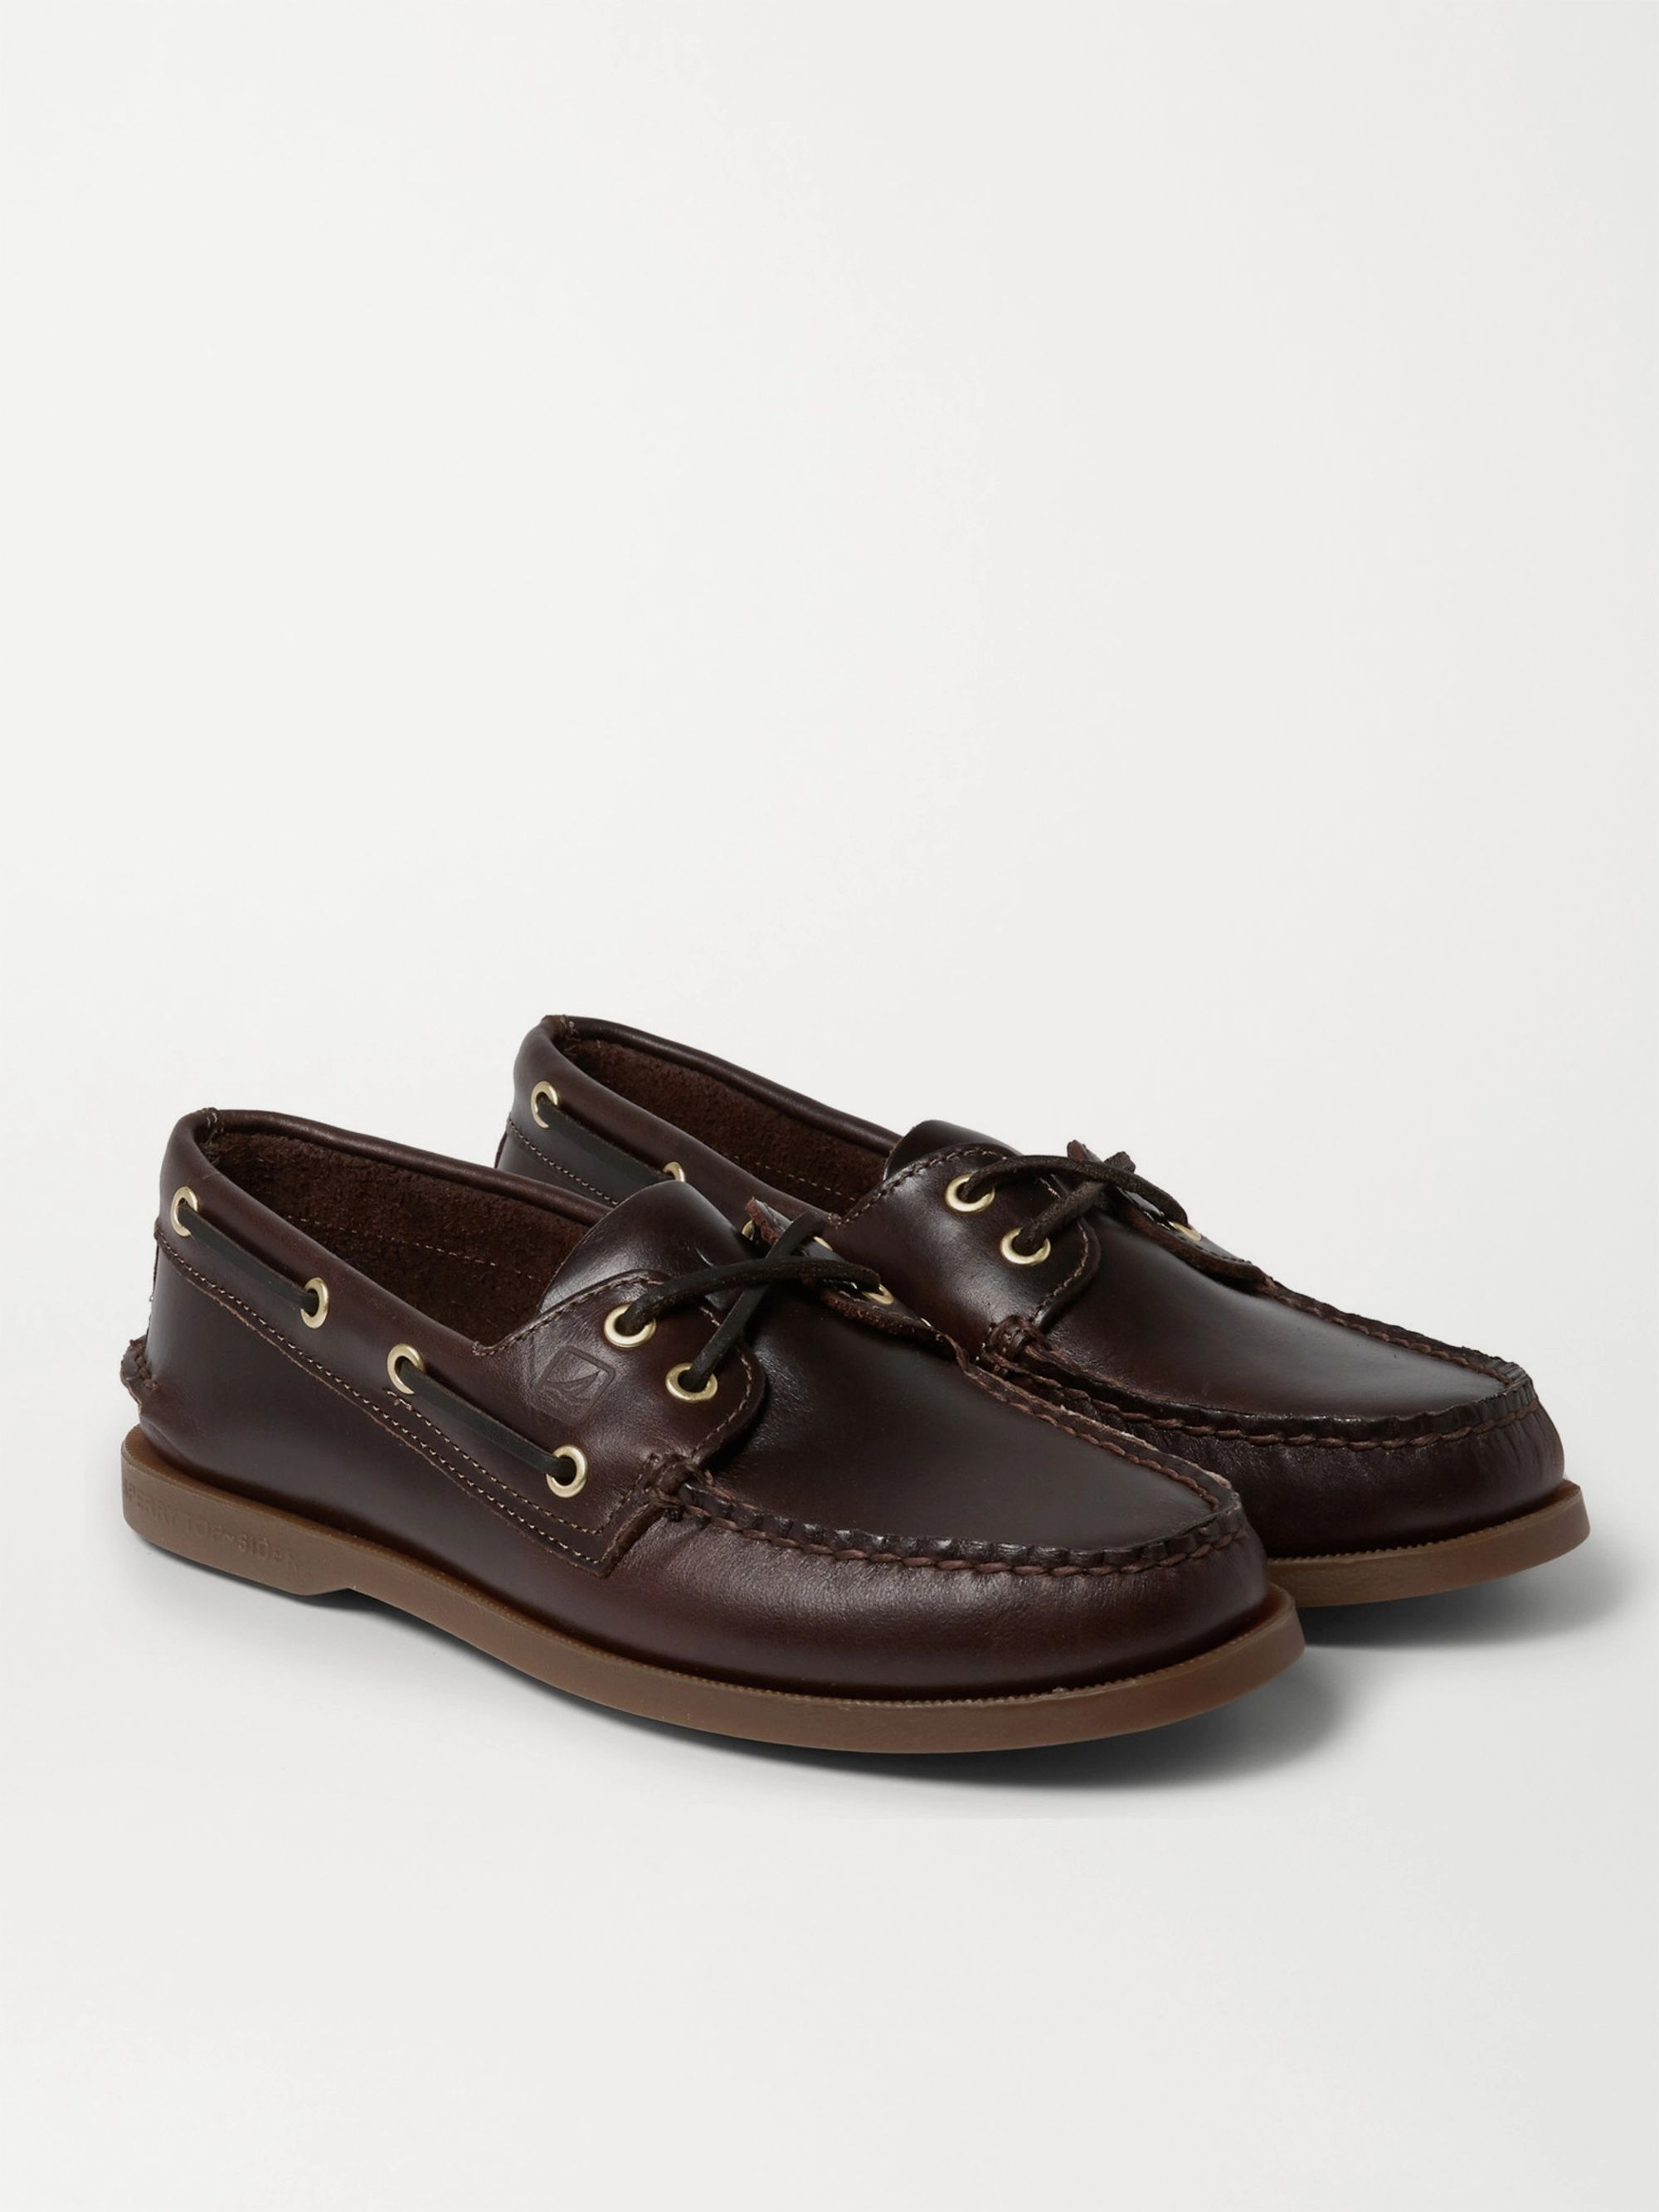 leather sperrys new style 52610 78f7b